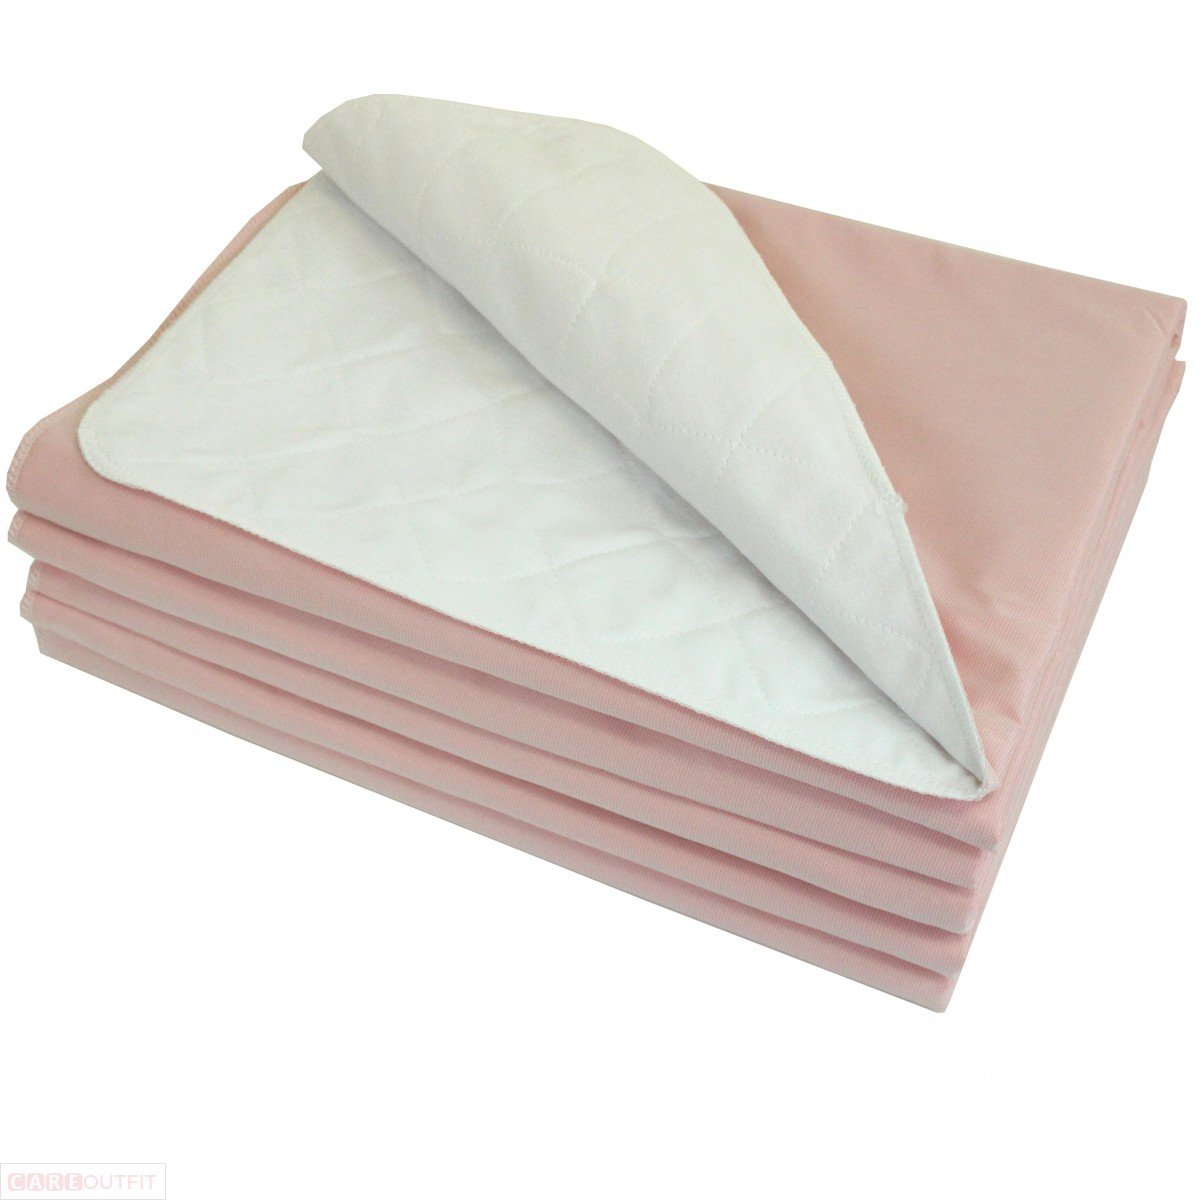 10 CT Heavy Absorbency 32''x36'' Adult Bed Chair Under Pad Underpad Cotton Top Sheet Washable Reusable